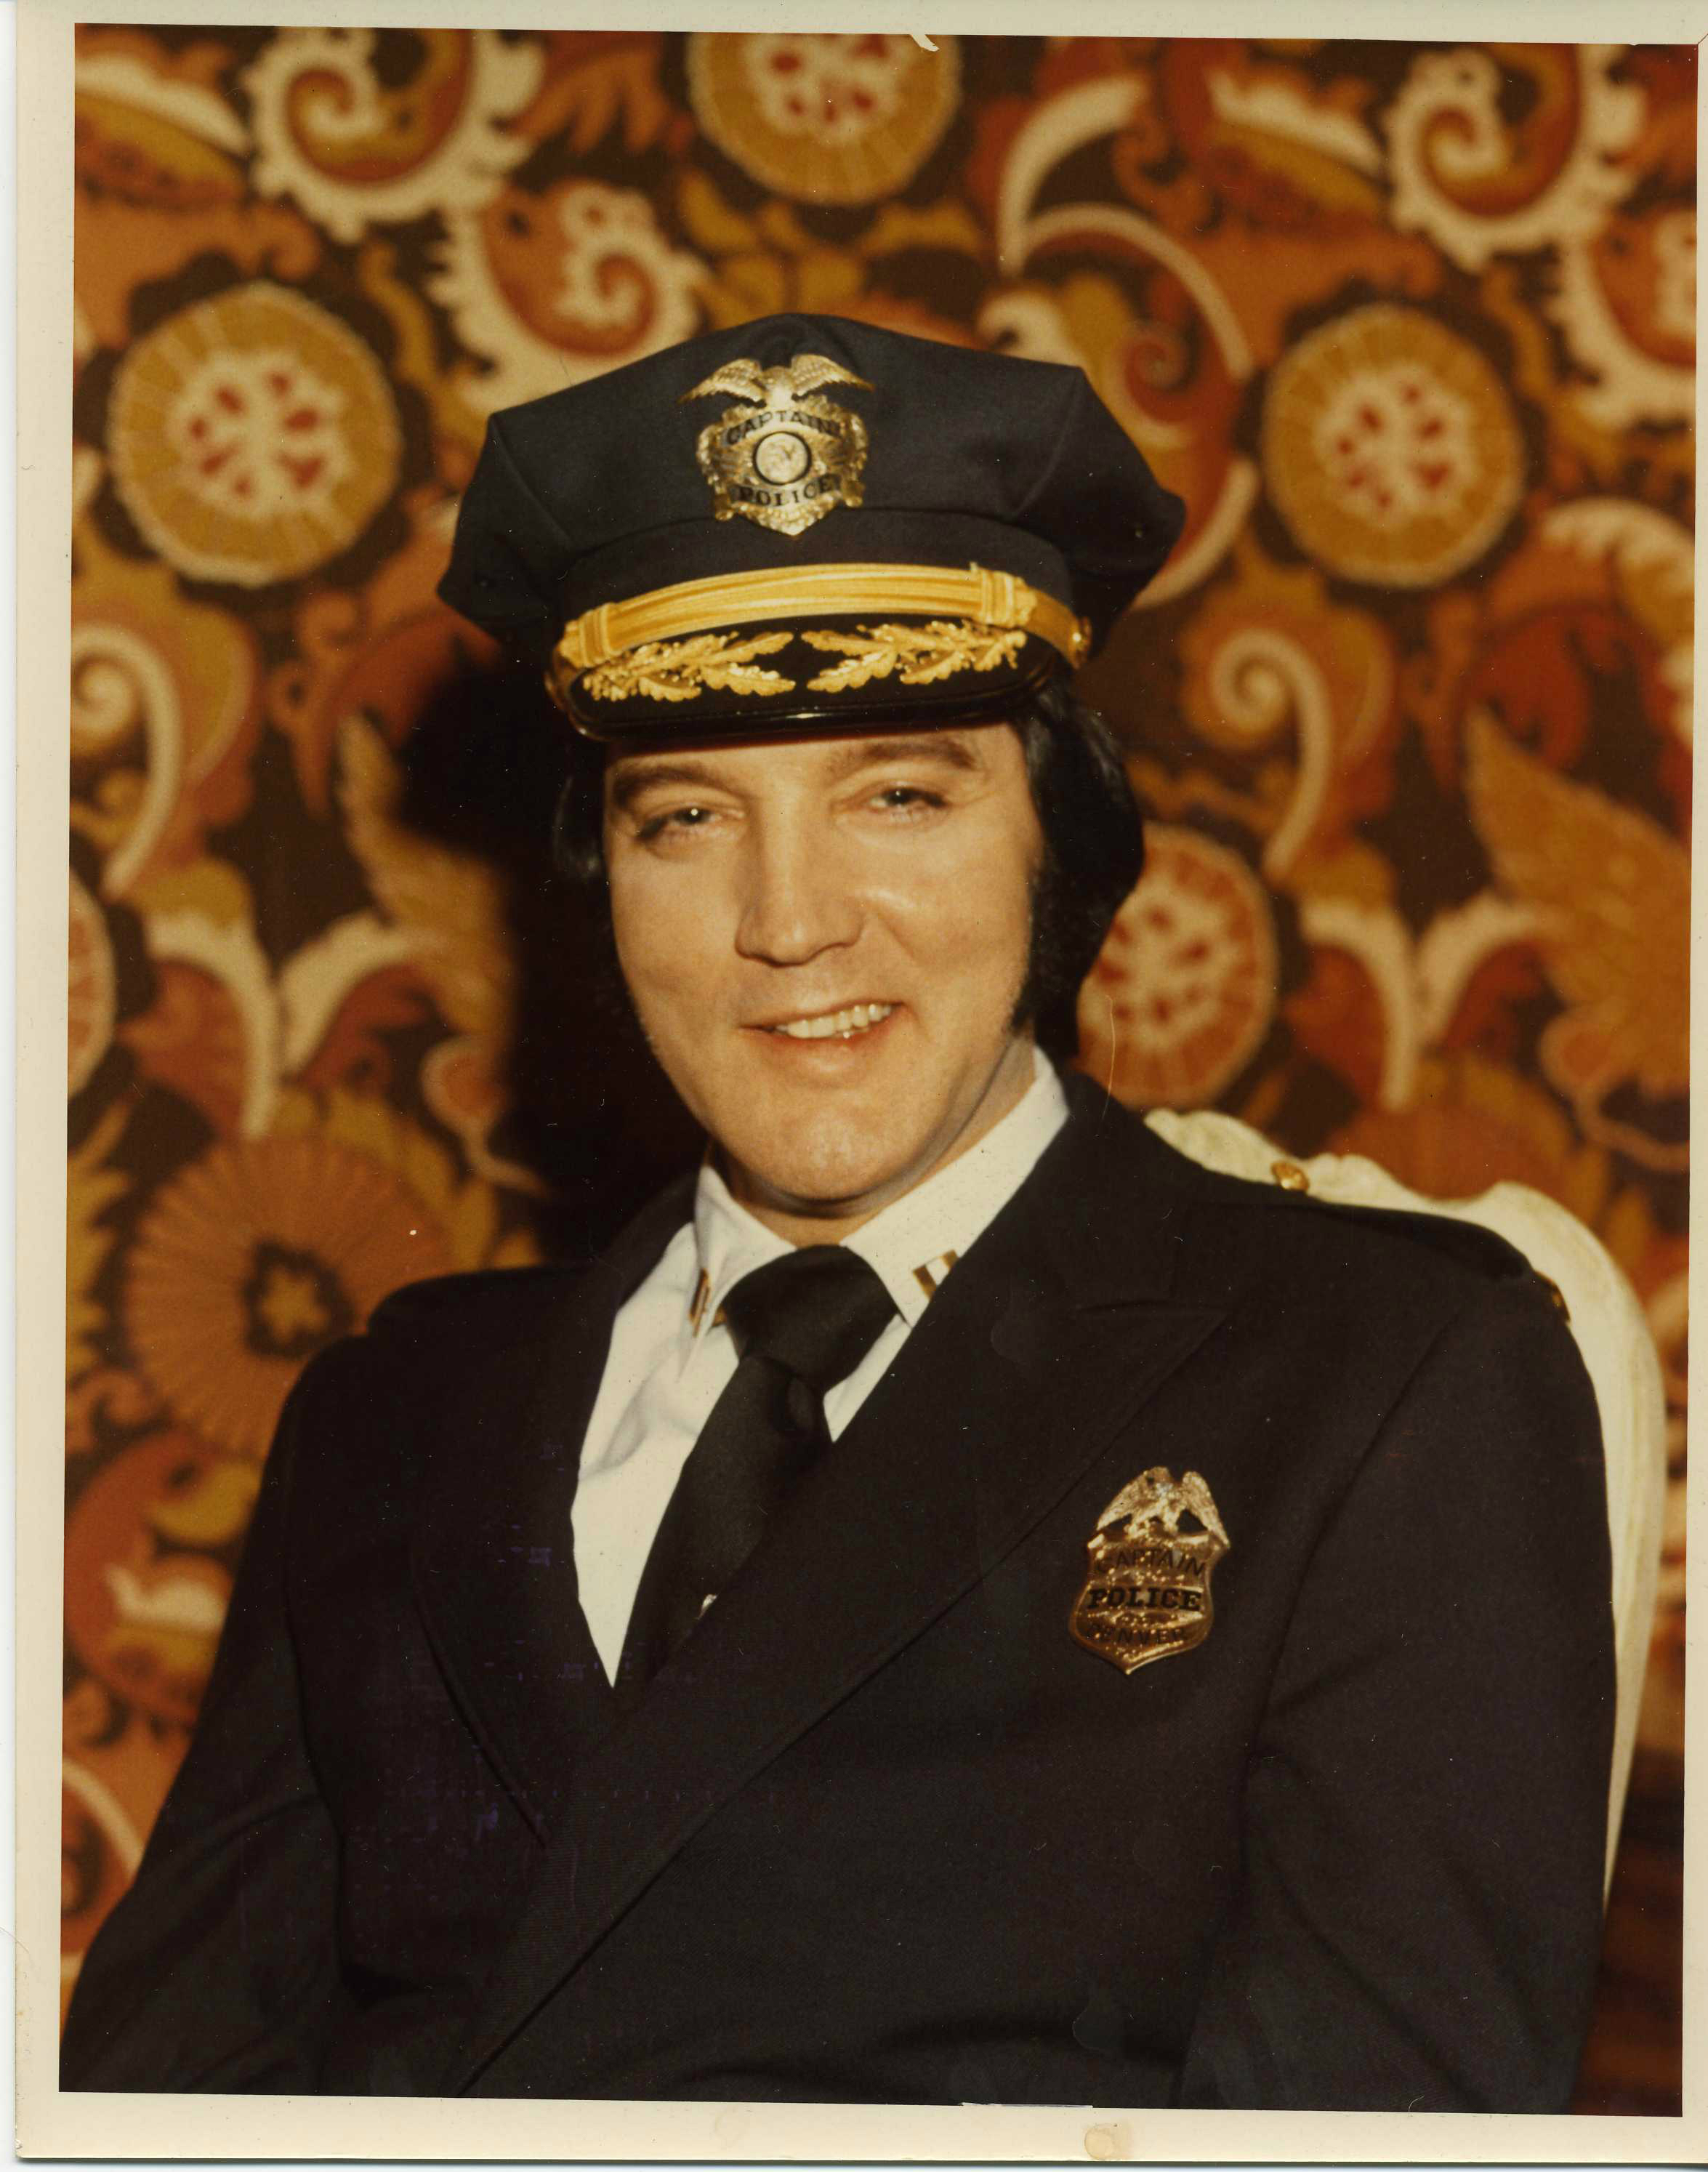 <p>Elvis Presley, as anhonorary captain in the Denver police force.</p>